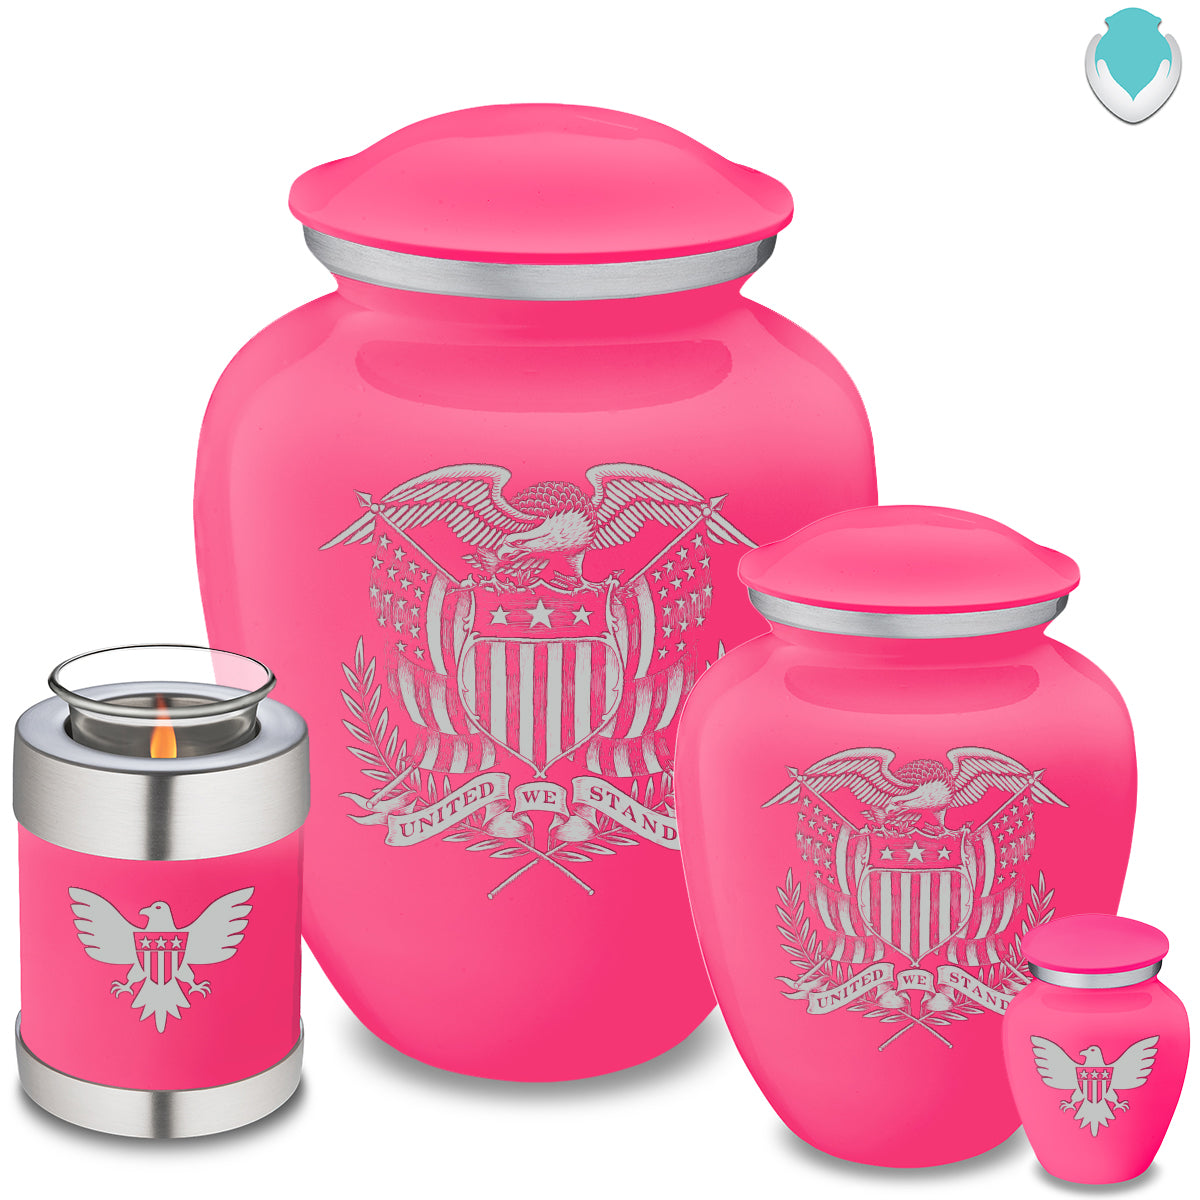 Candle Holder Embrace Bright Pink American Glory Cremation Urn